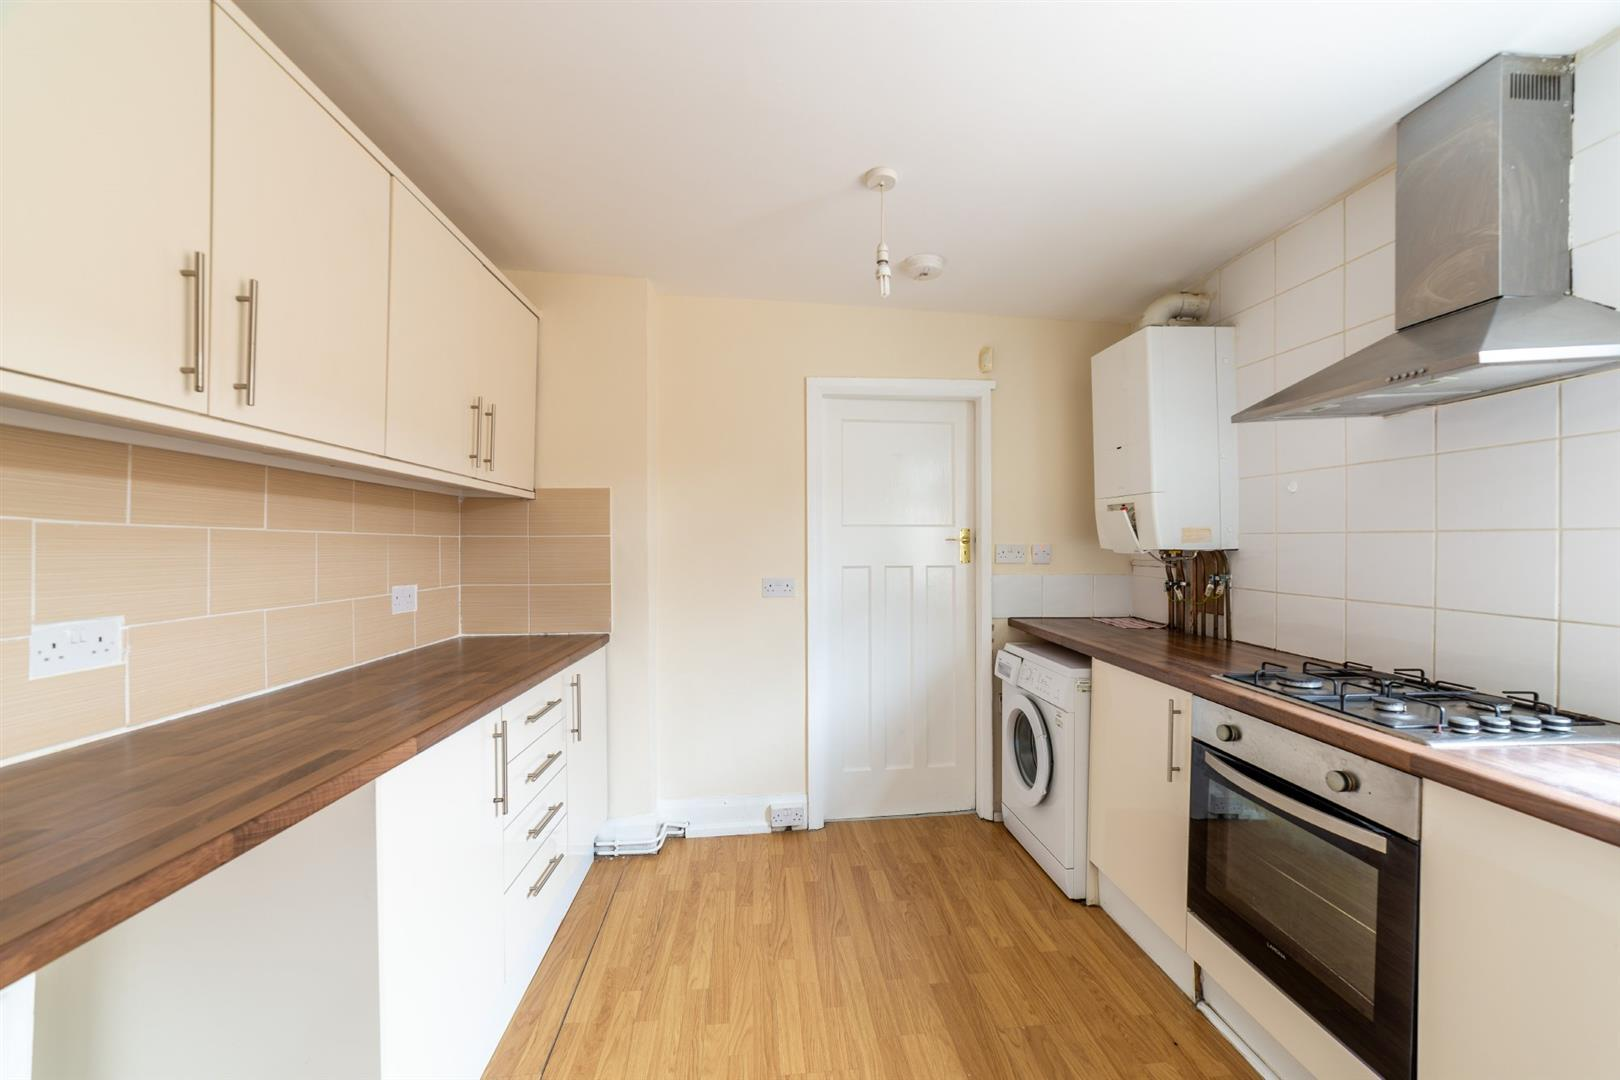 3 bed flat to rent in Newcastle Upon Tyne, NE2 2JS - Property Image 1